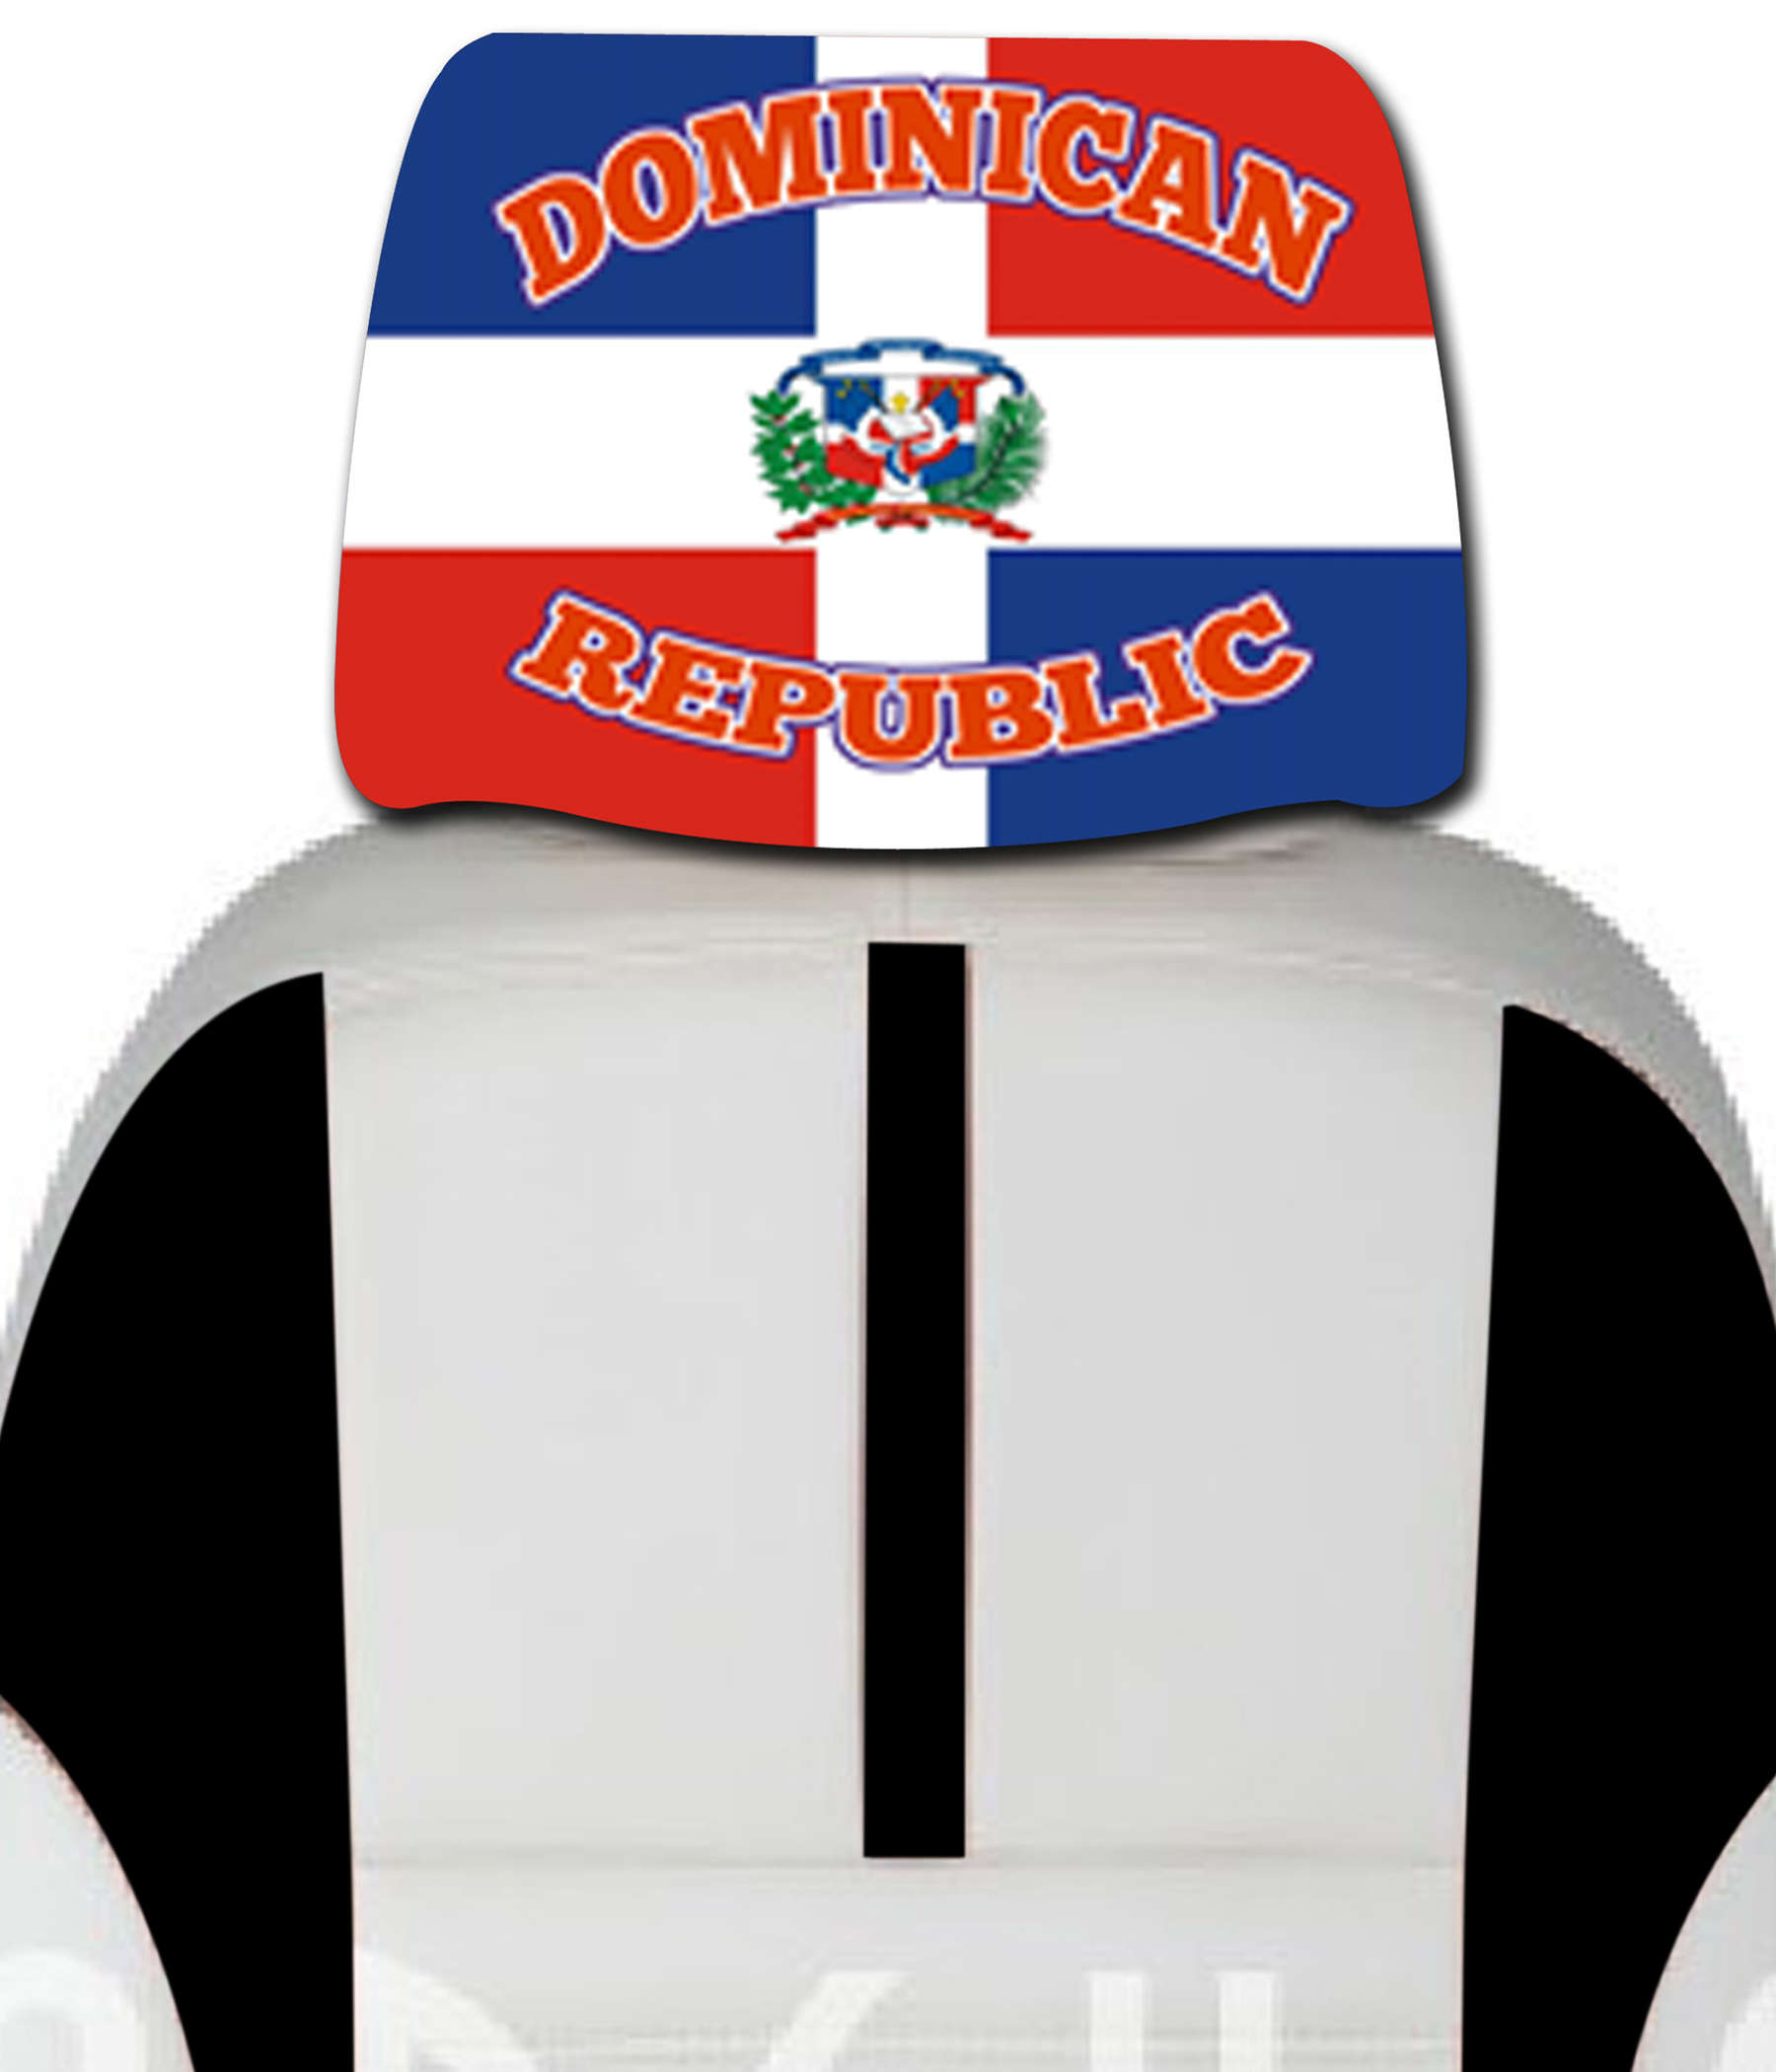 images/Dominican Republic headrest car cover seat flag.jpg